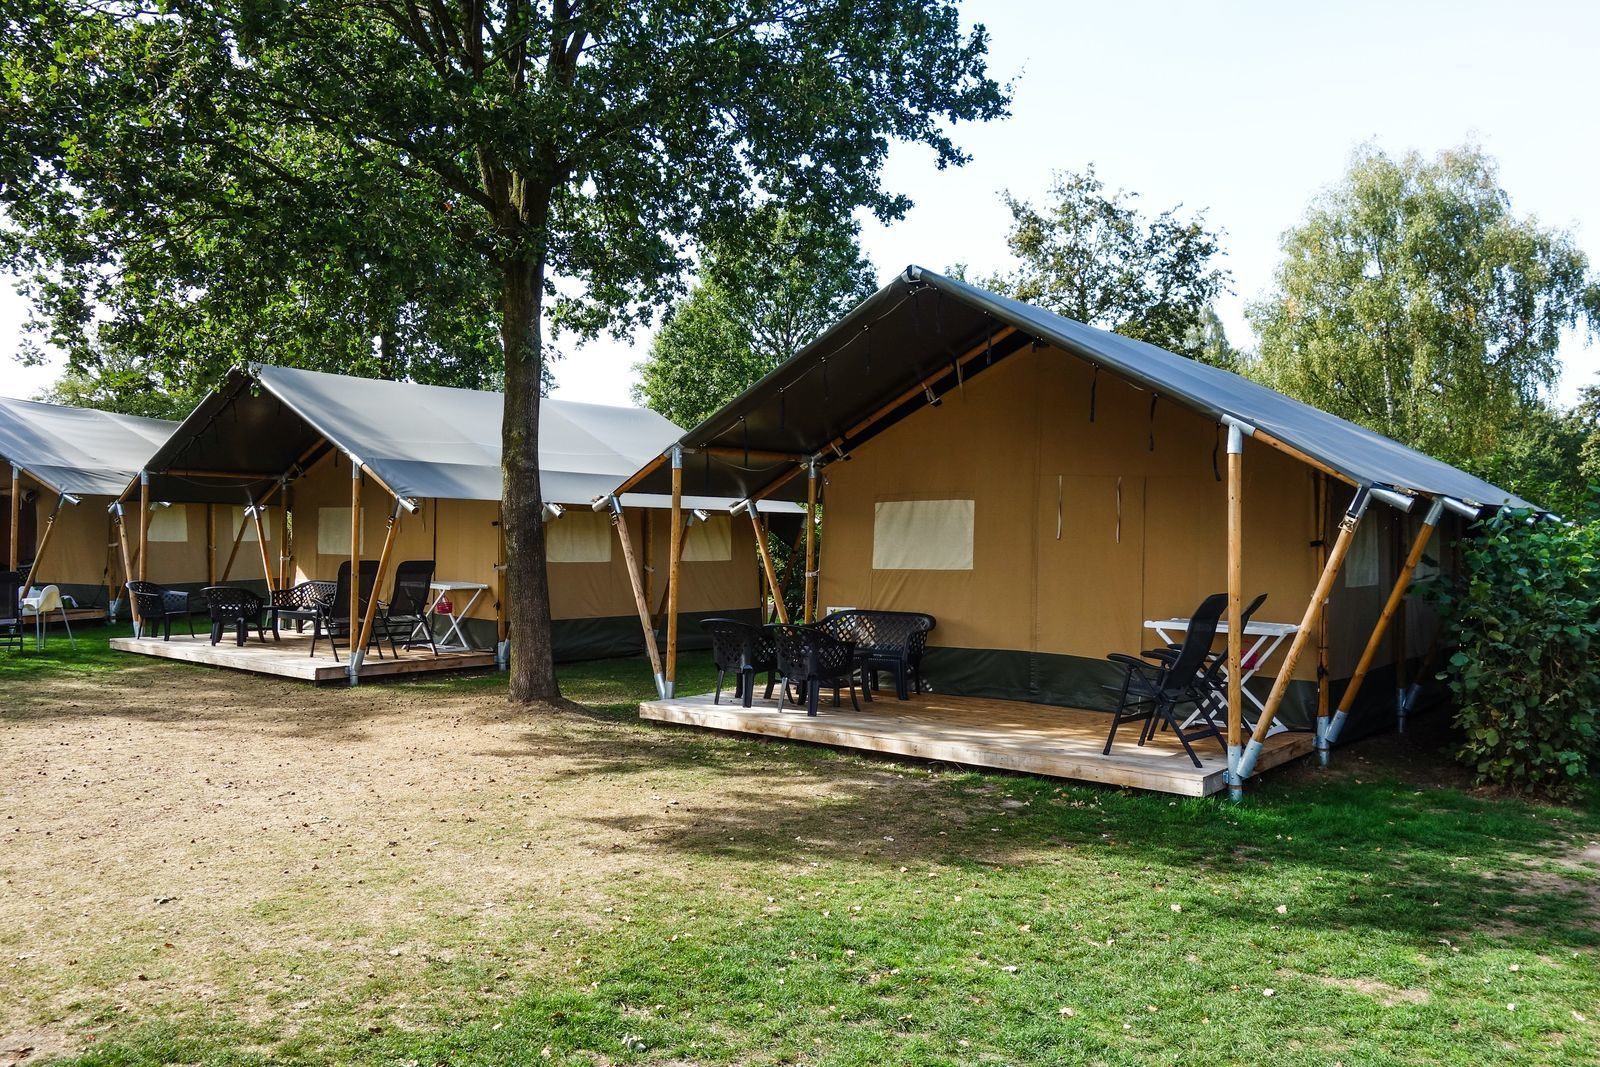 Safari tent in The Netherlands